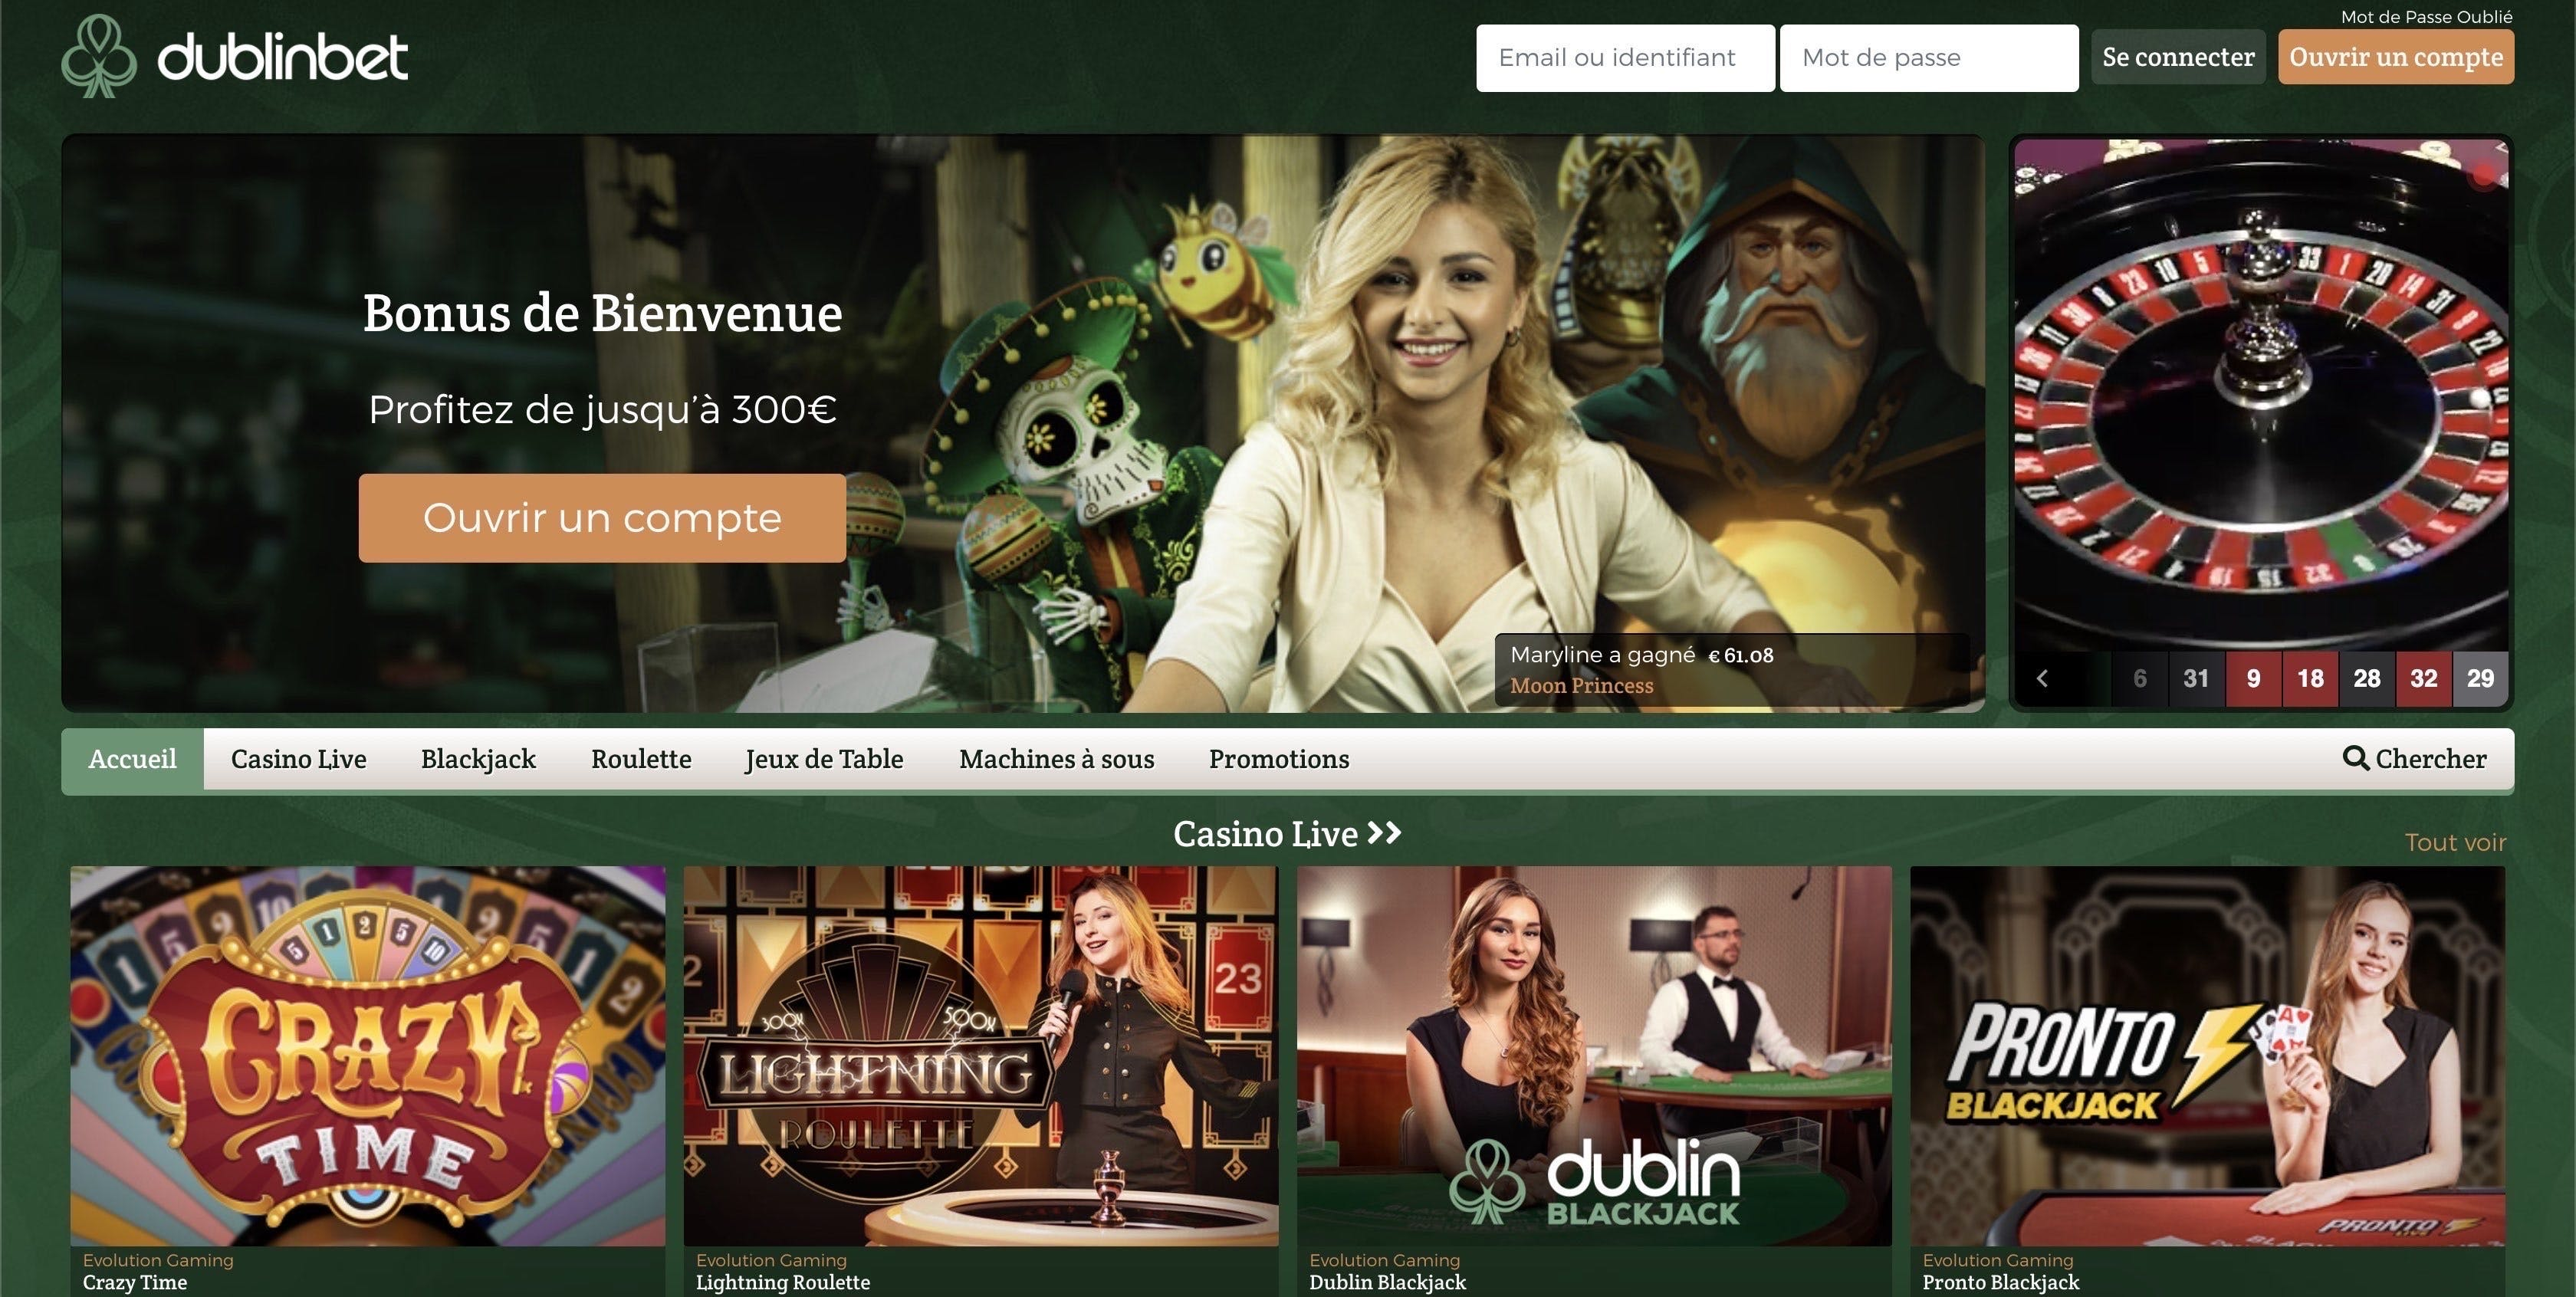 Legal to play poker online for money